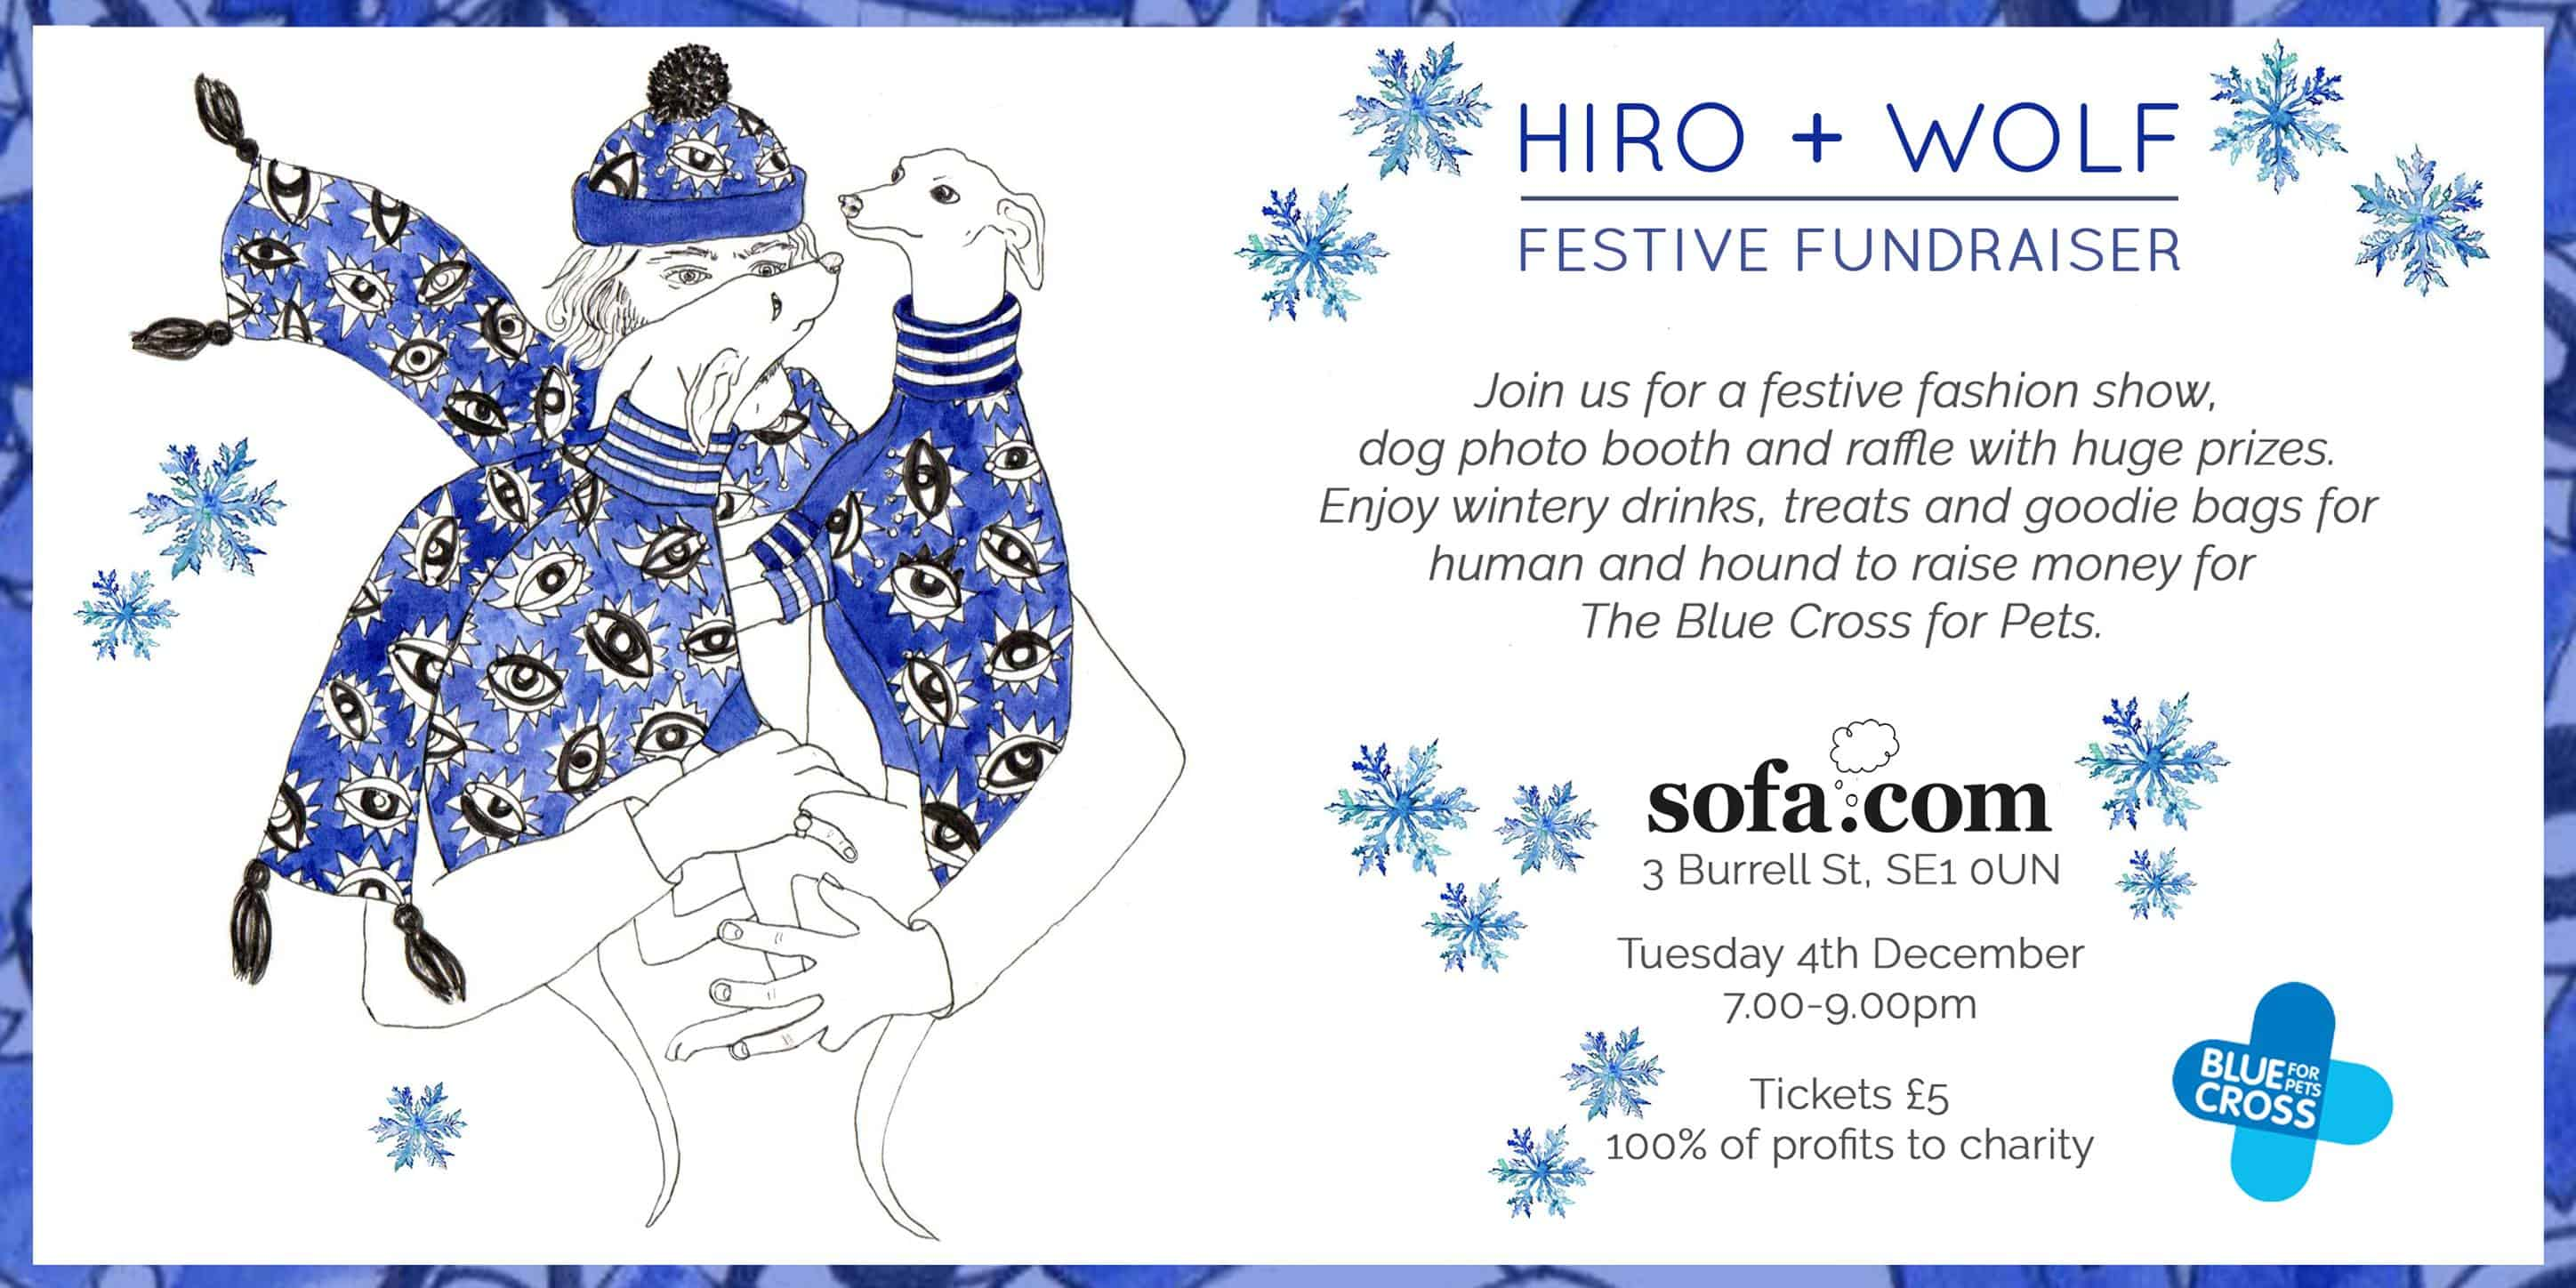 Hiro + Wolf Festive Fundraiser and Doggy Fashion Show